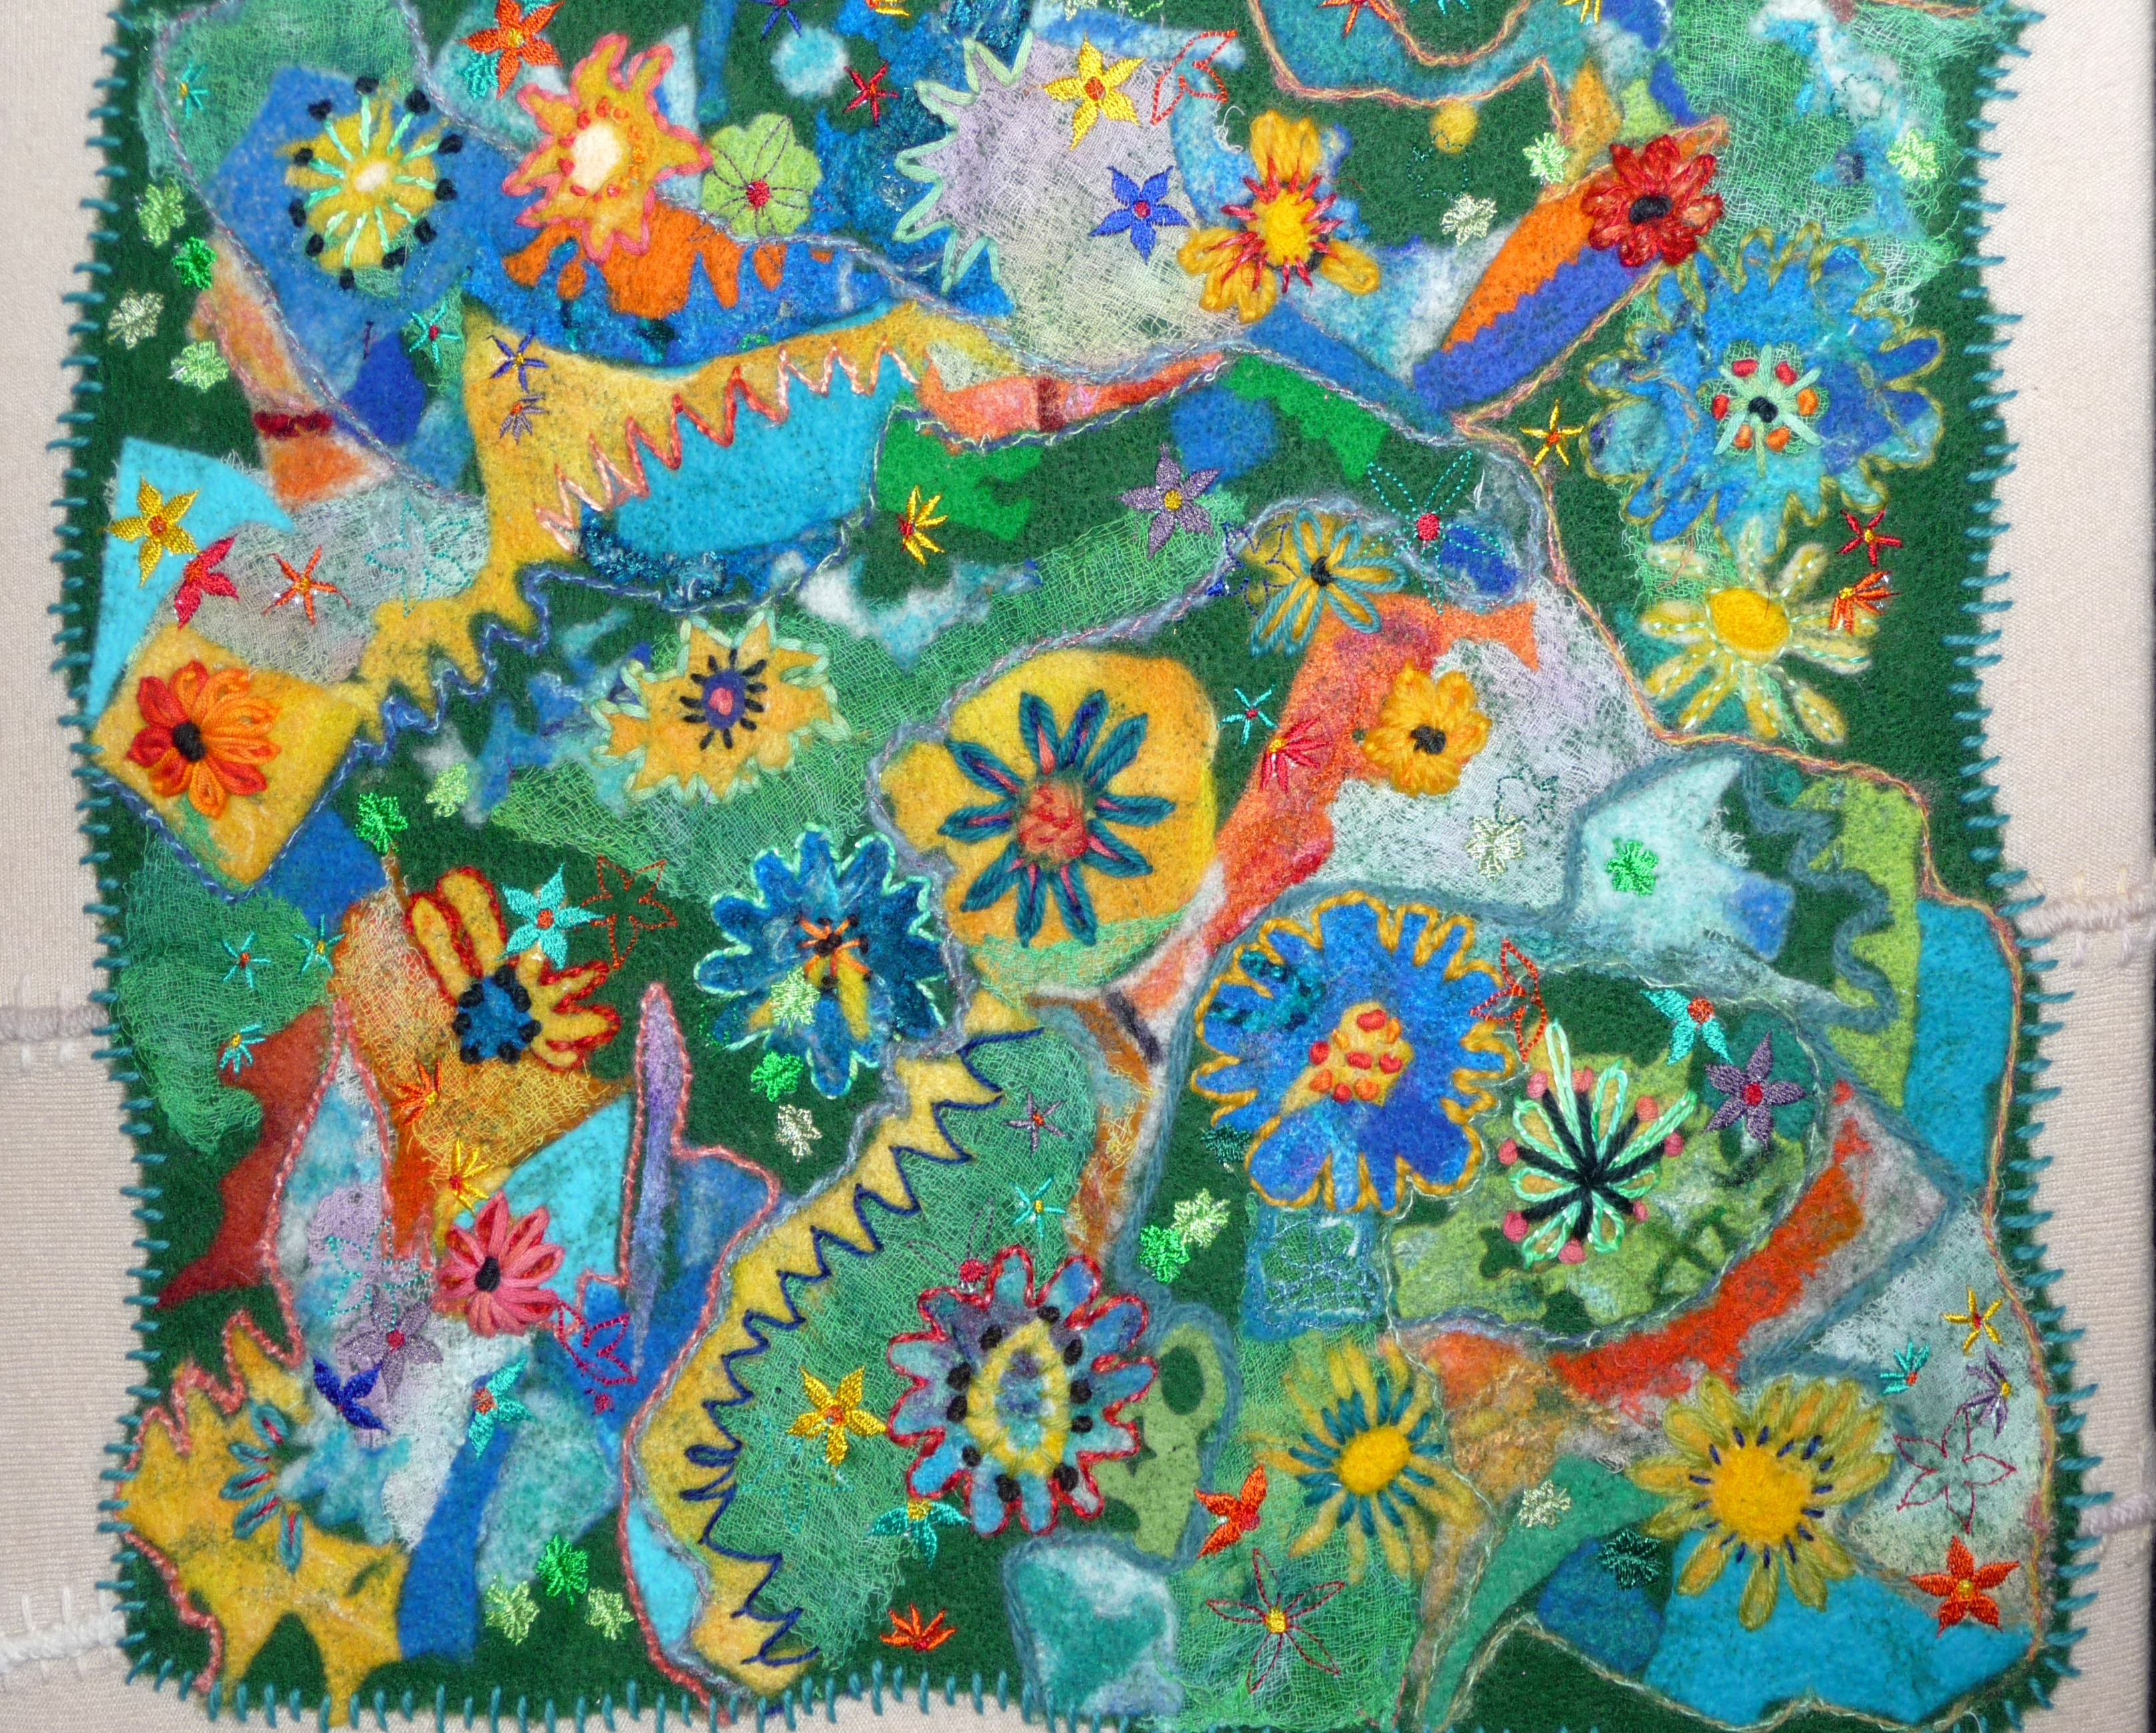 THE STATE OF MY BRAIN, Wild & Wacky, by Jane Jenkins, repurposed wools, felt off-cuts, old cardigan hand and machine embroidered